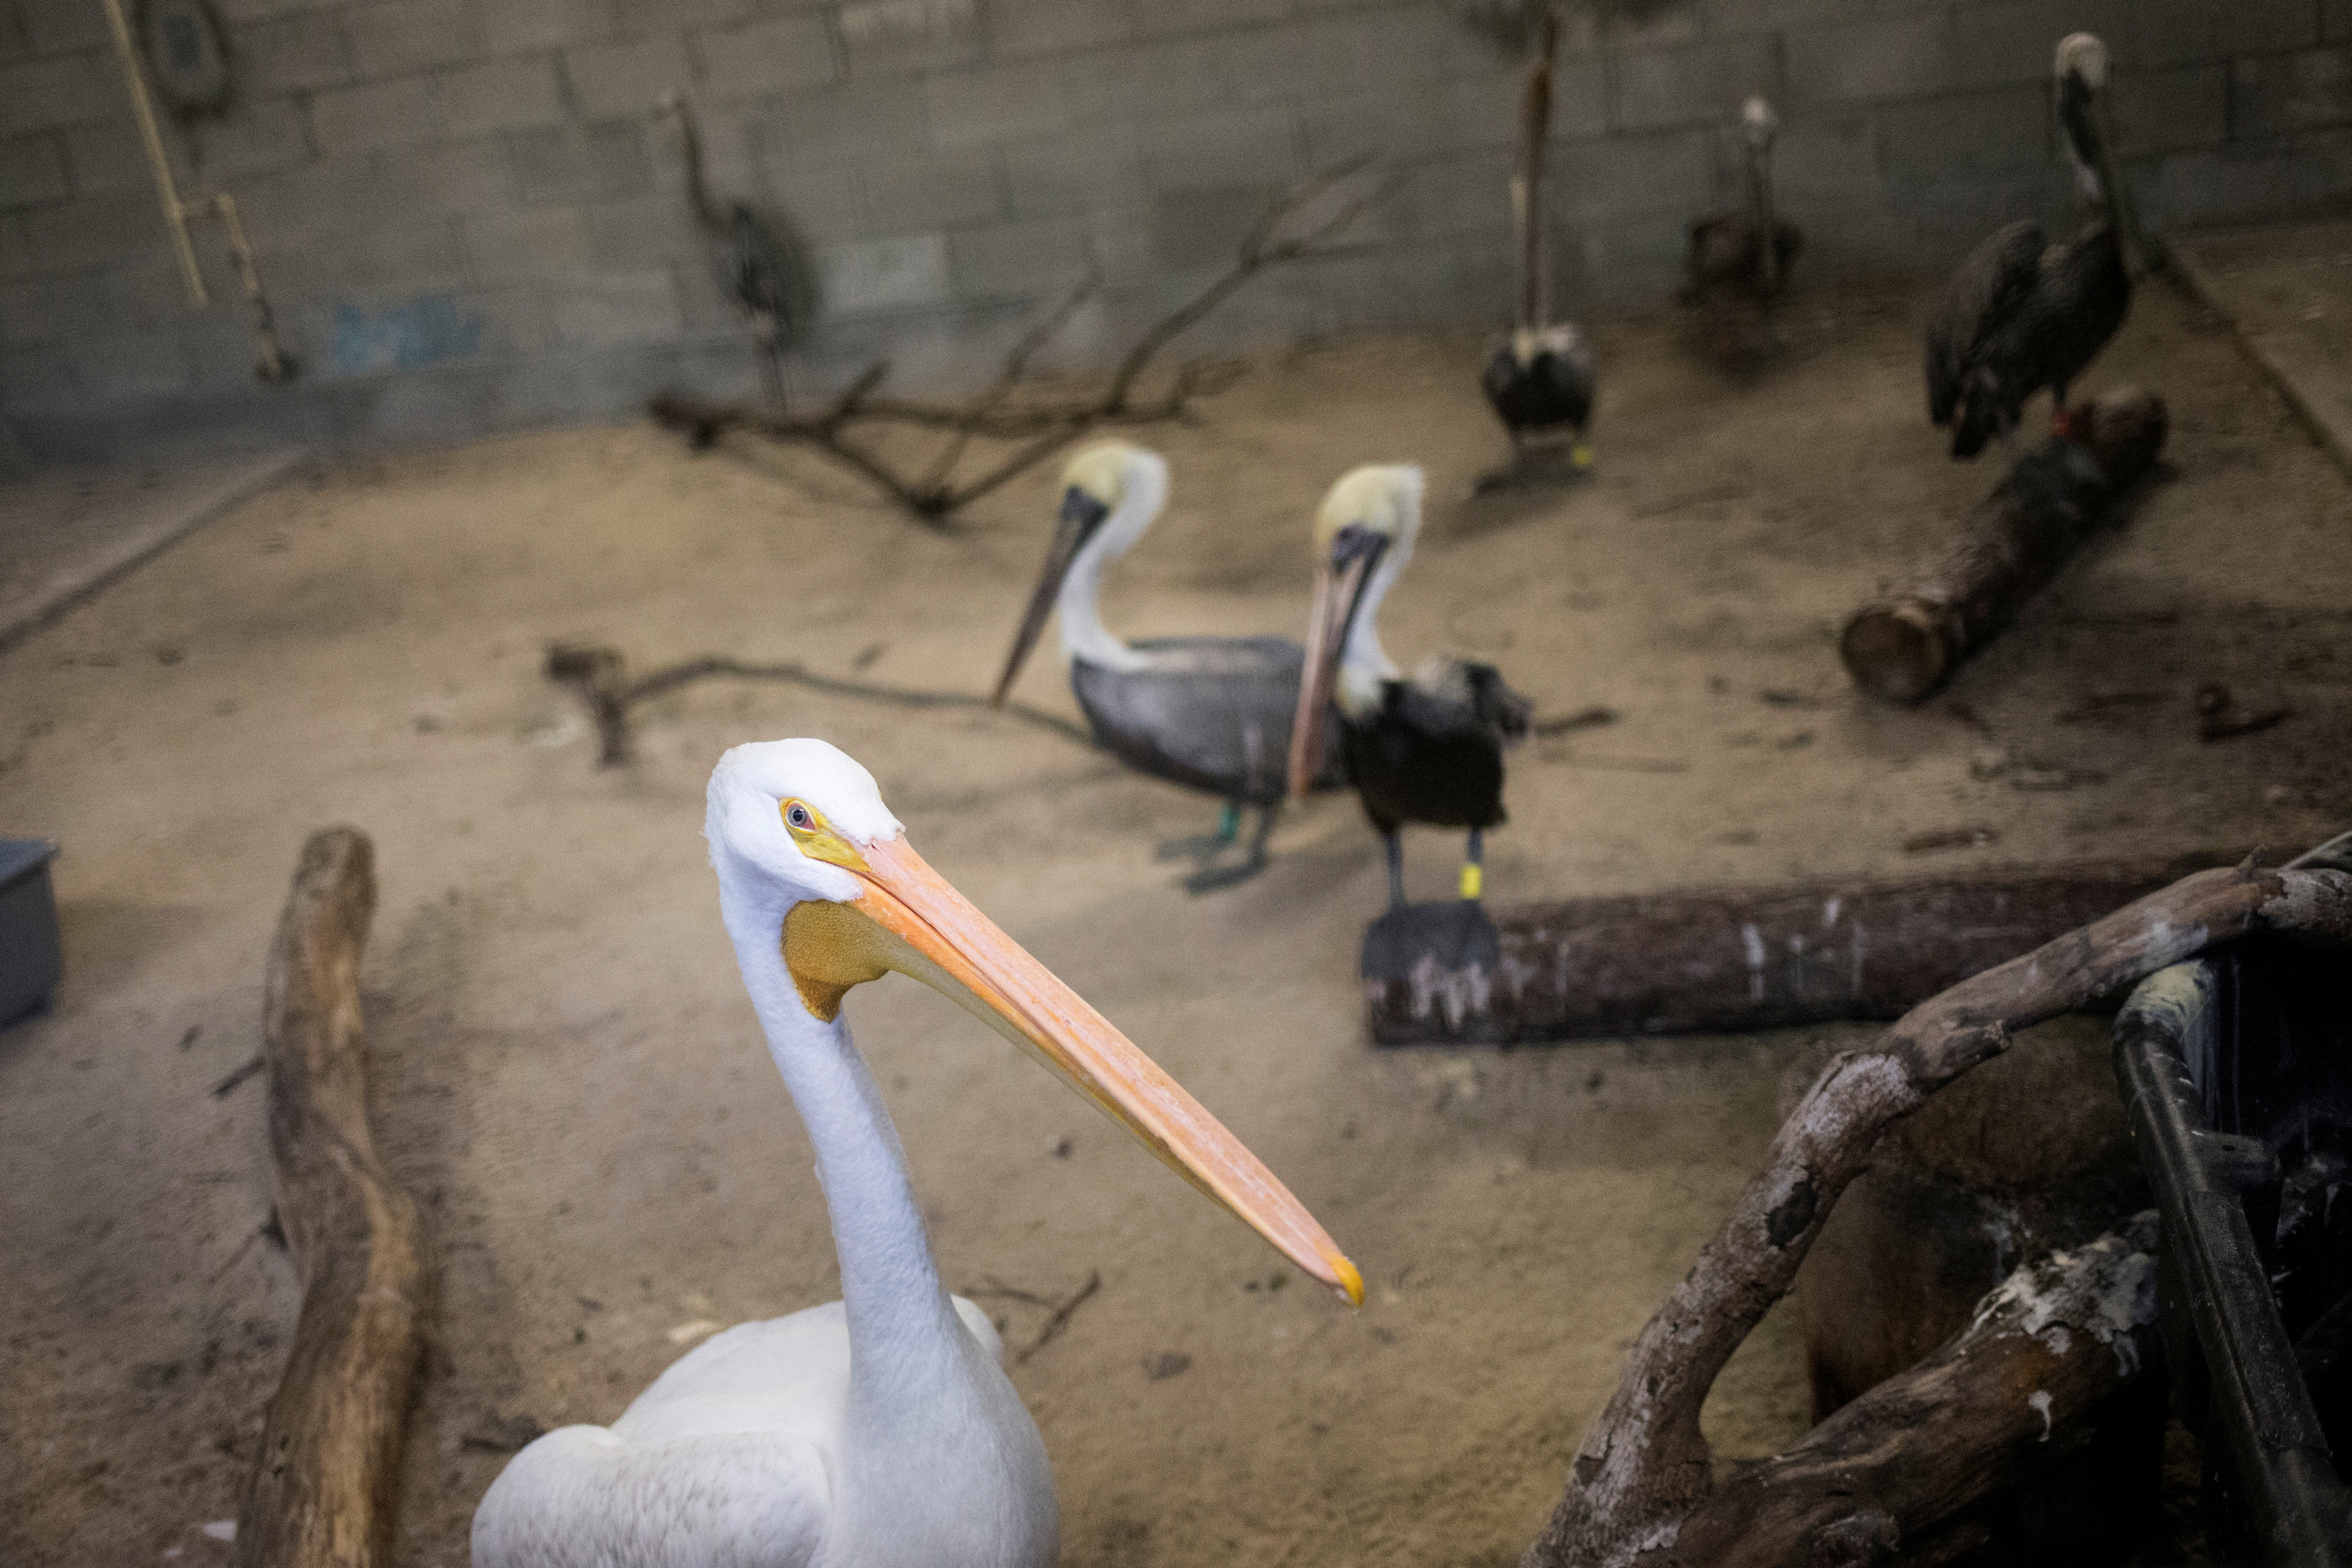 An American white pelican and brown pelicans take refuge in a shelter ahead of the downfall of Hurricane Irma at the zoo in Miami, Florida, U.S. September 9, 2017.  REUTERS/Adrees Latif